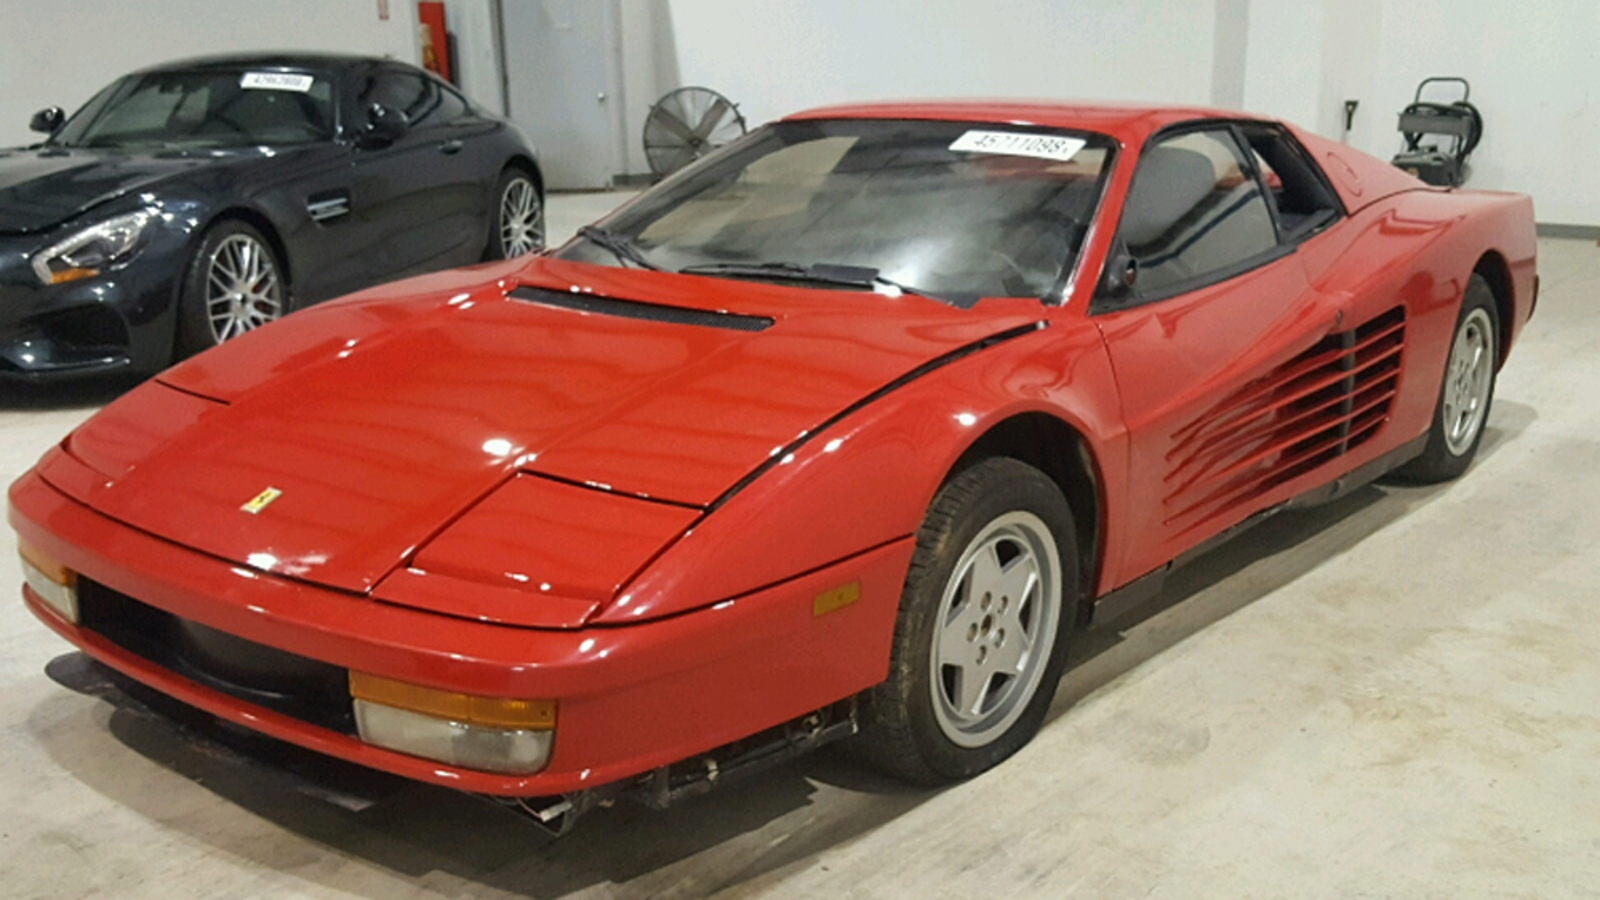 This Salvage-Title 1990 Ferrari Testarossa Is Super Cheap And Putting Some Bad Ideas In My Head